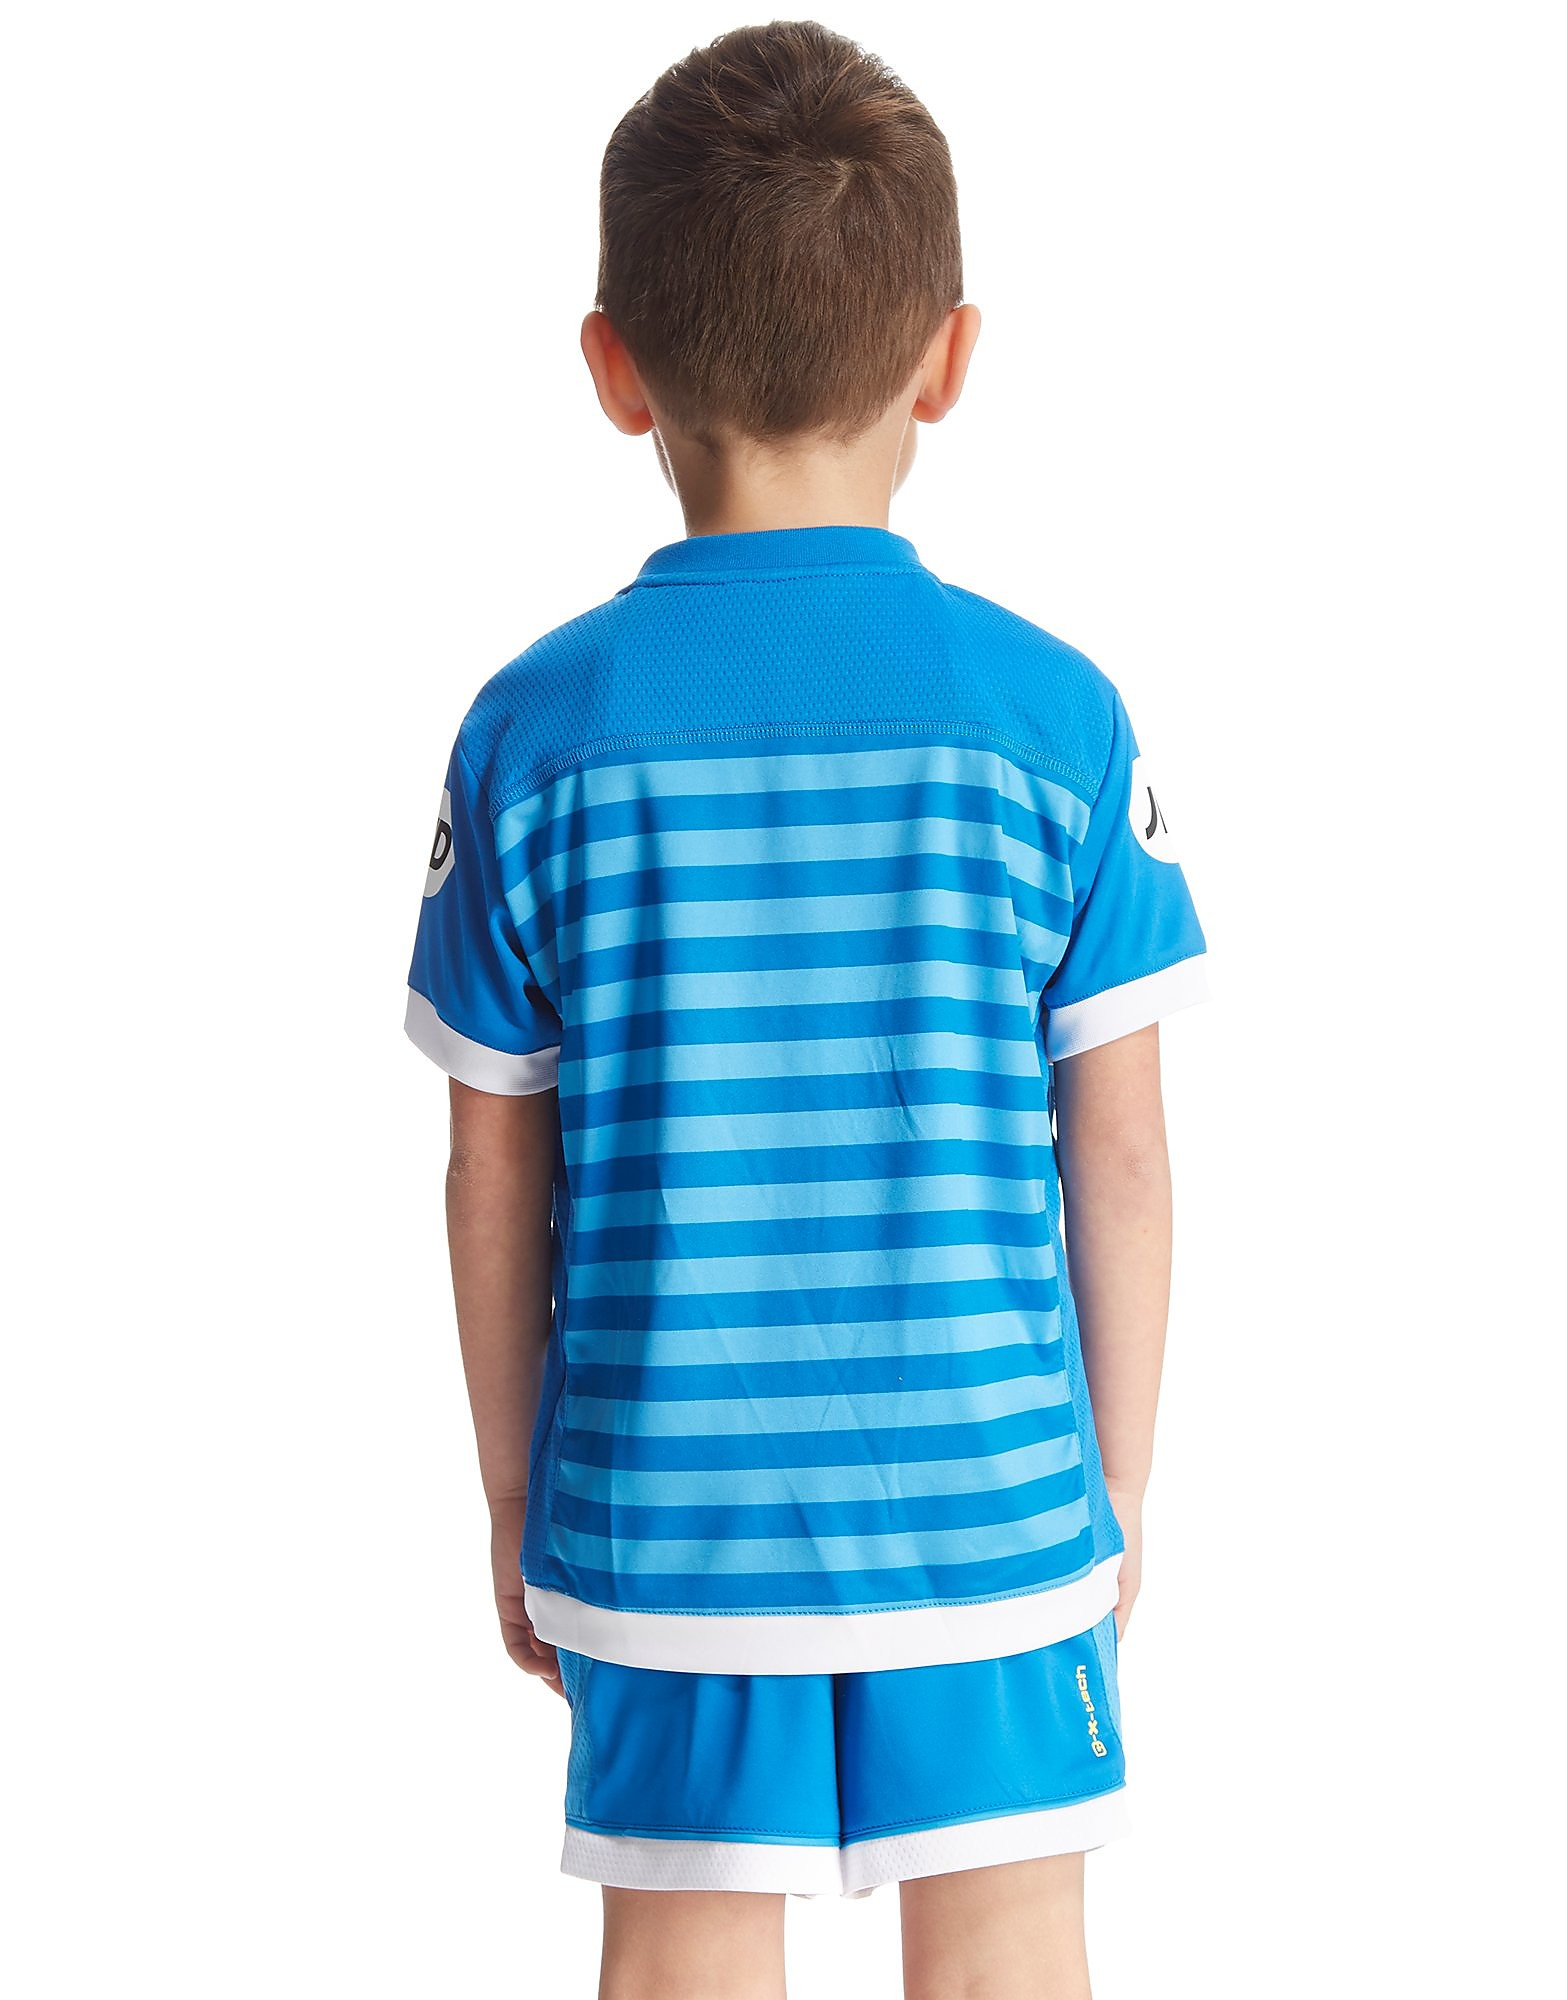 JD AFC Bournemouth 2016/17 Away Kit Children